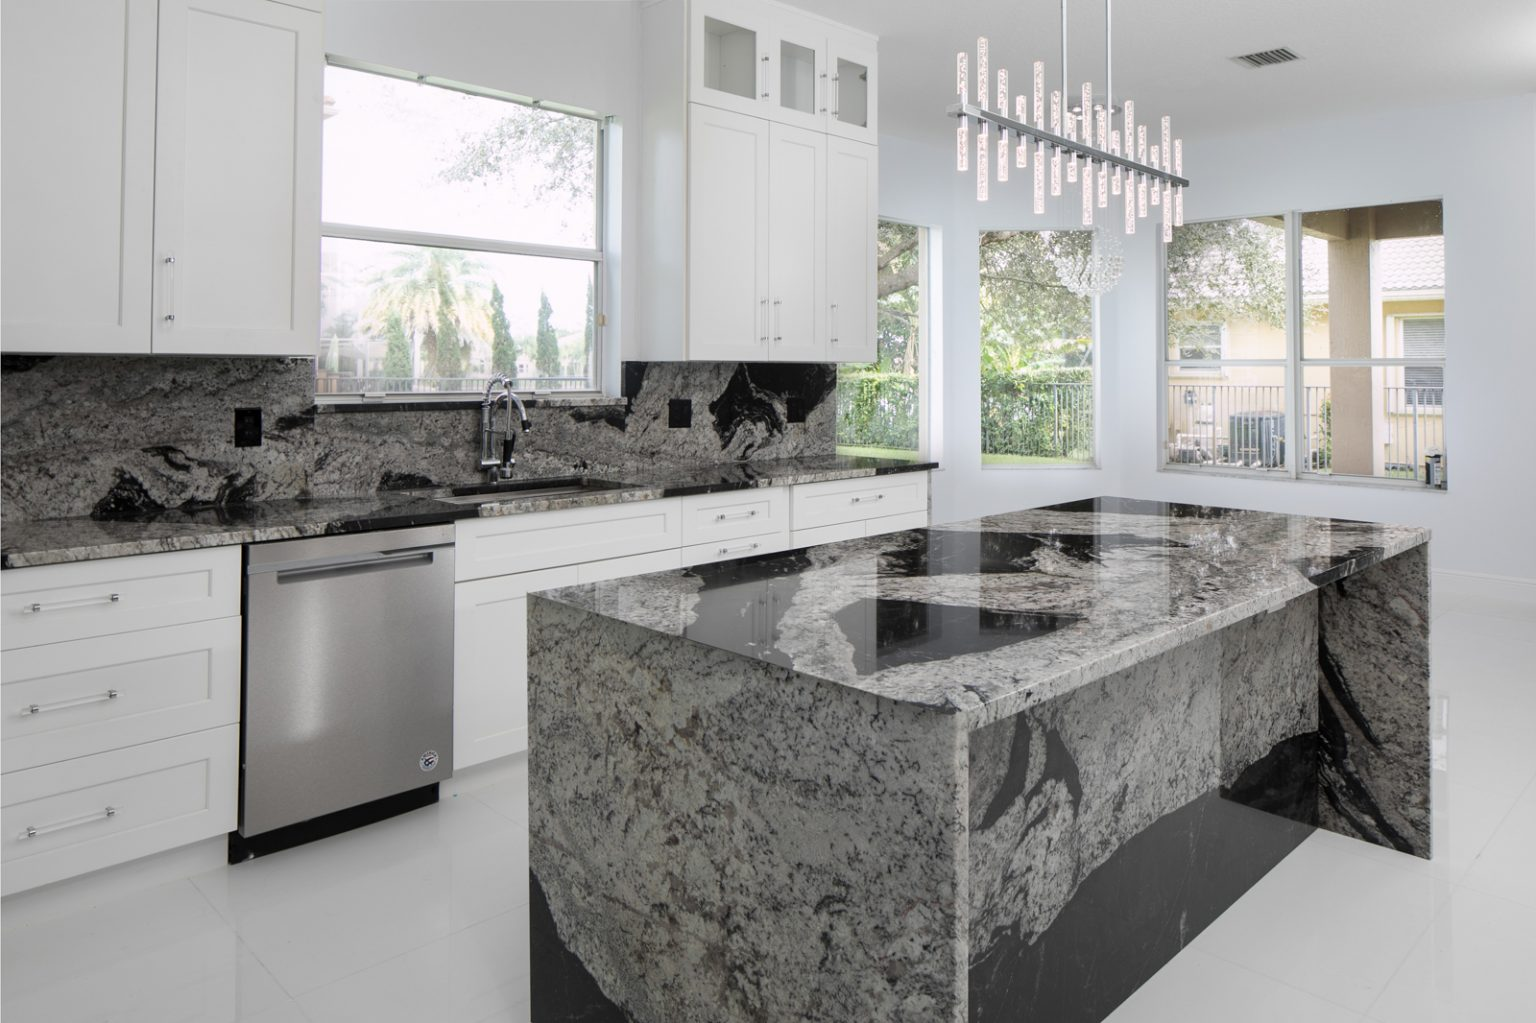 Moari Granite 6 Of 10 1 1536x1023, Primestones® Granite, Quartz, Marble